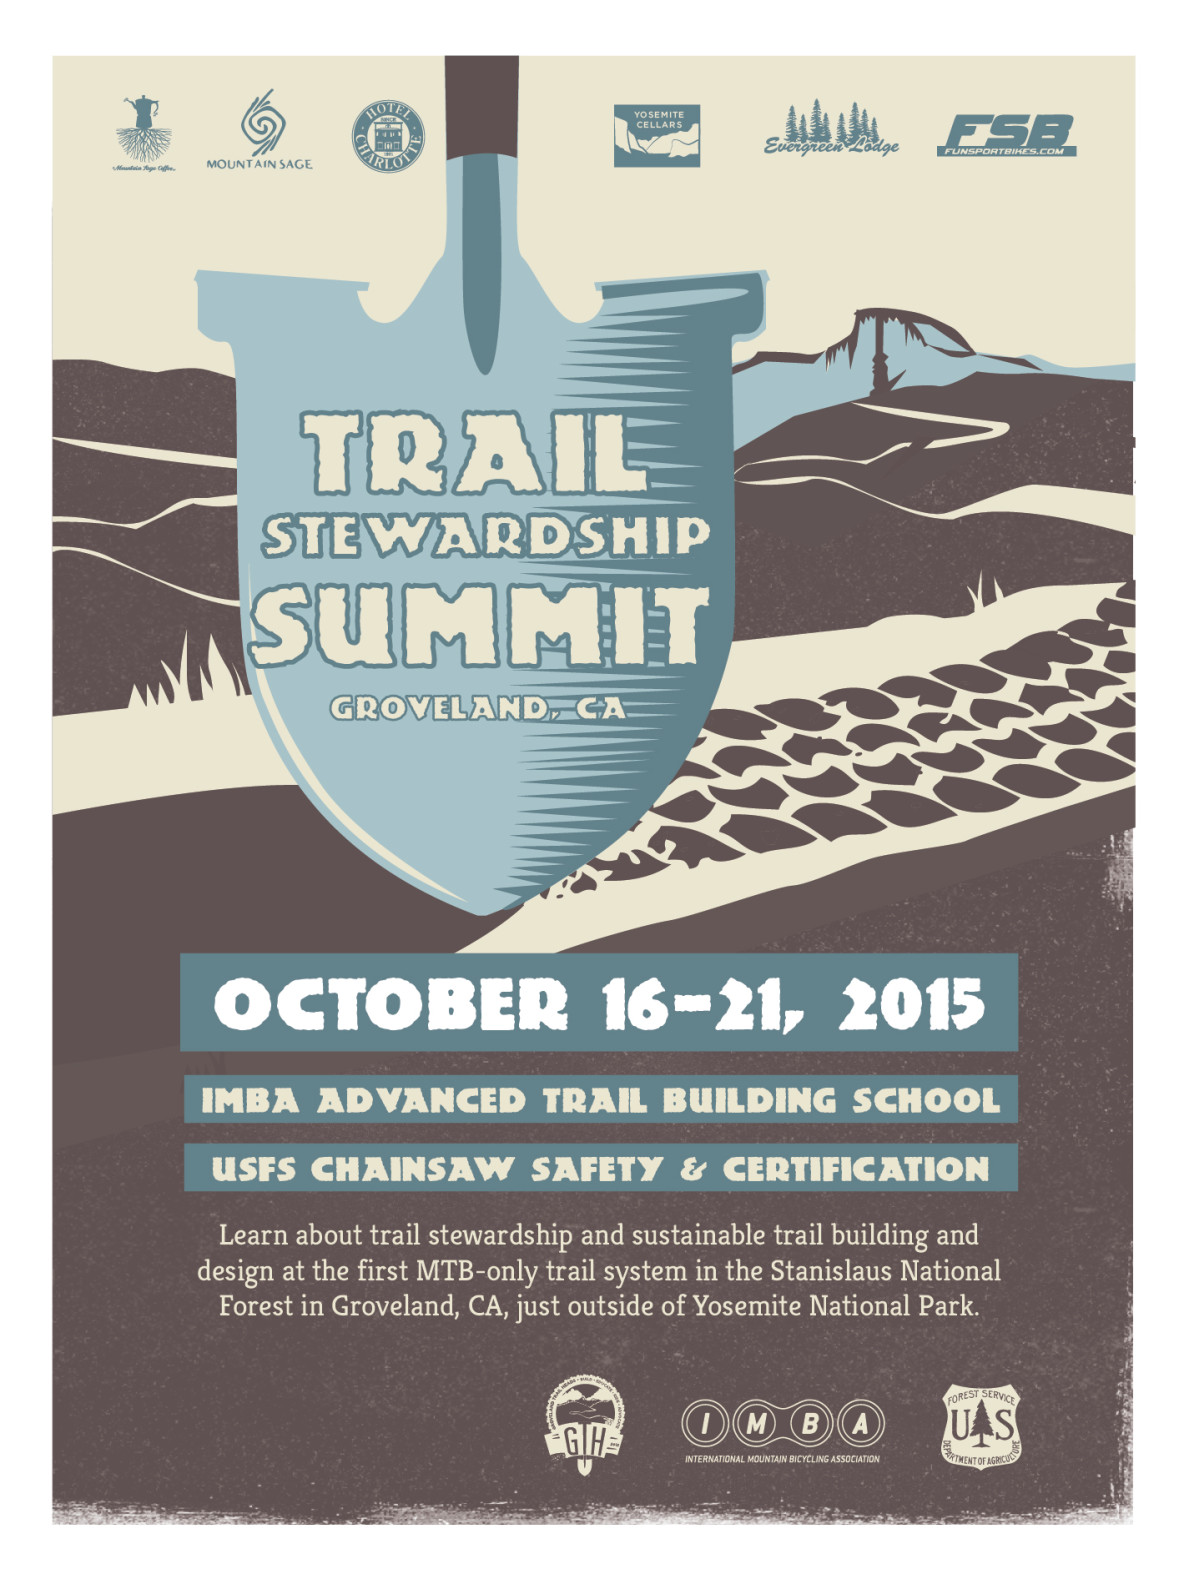 Poster Design for Groveland Trail Stewardship Summit